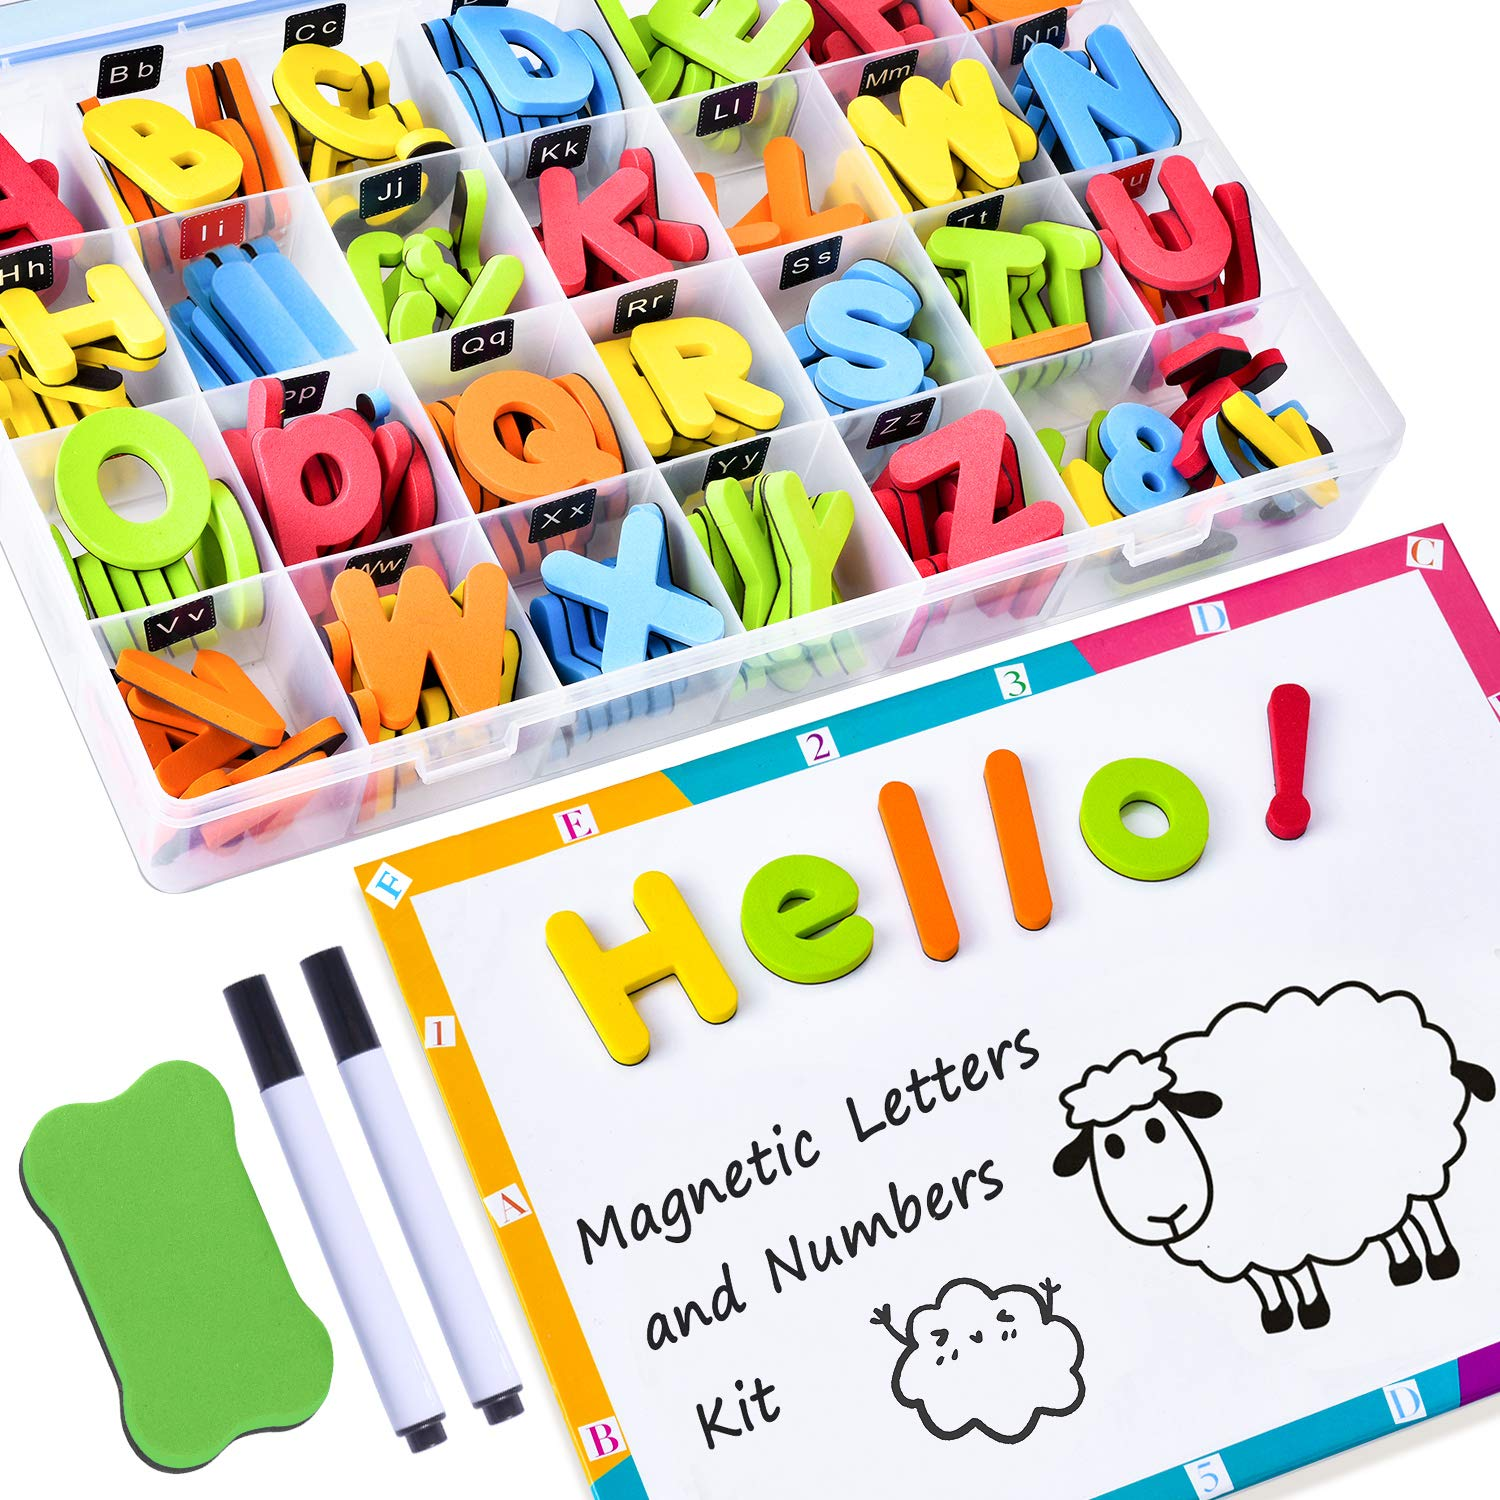 225Pcs Magnetic Letters und Numbers für Kids mit Double-Seite Magnet Board und Storage Kasten - Abc Uppercase Lowercase Foam Alphabet Letters für Toddlers - Classroom Zuhause Education Spelling Learning Set